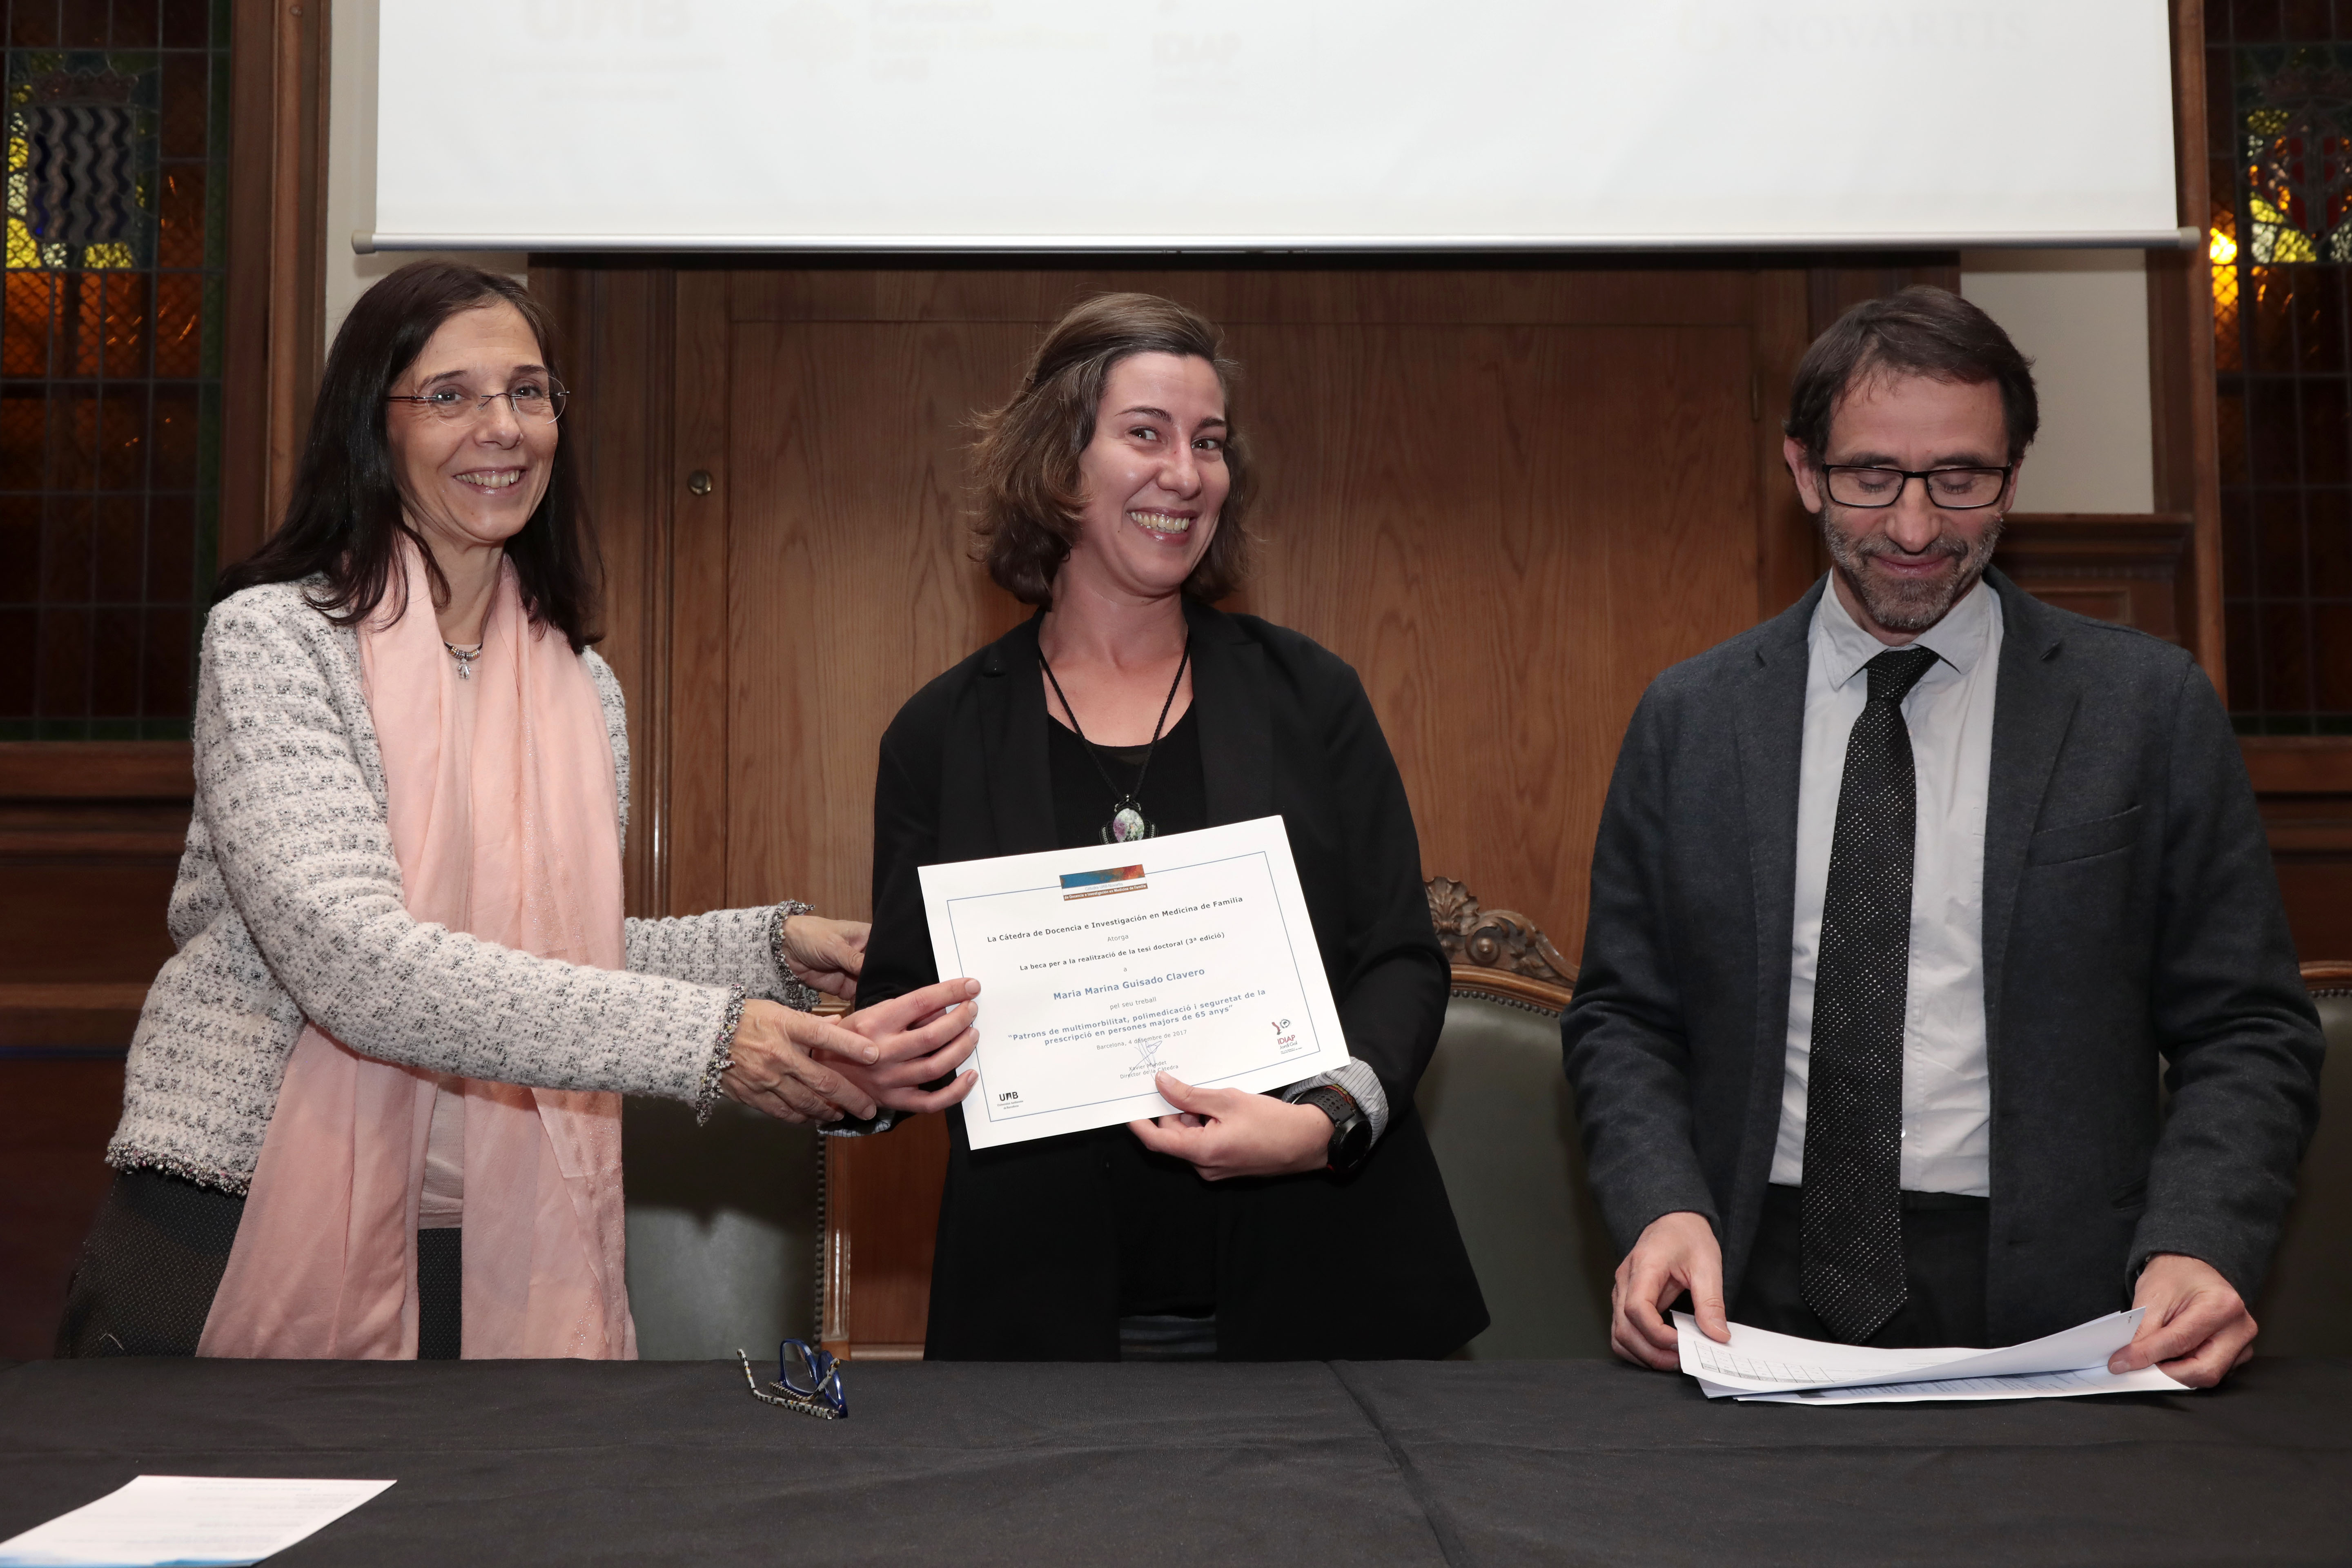 Awarded the Dr. Marina Guisado Clavero